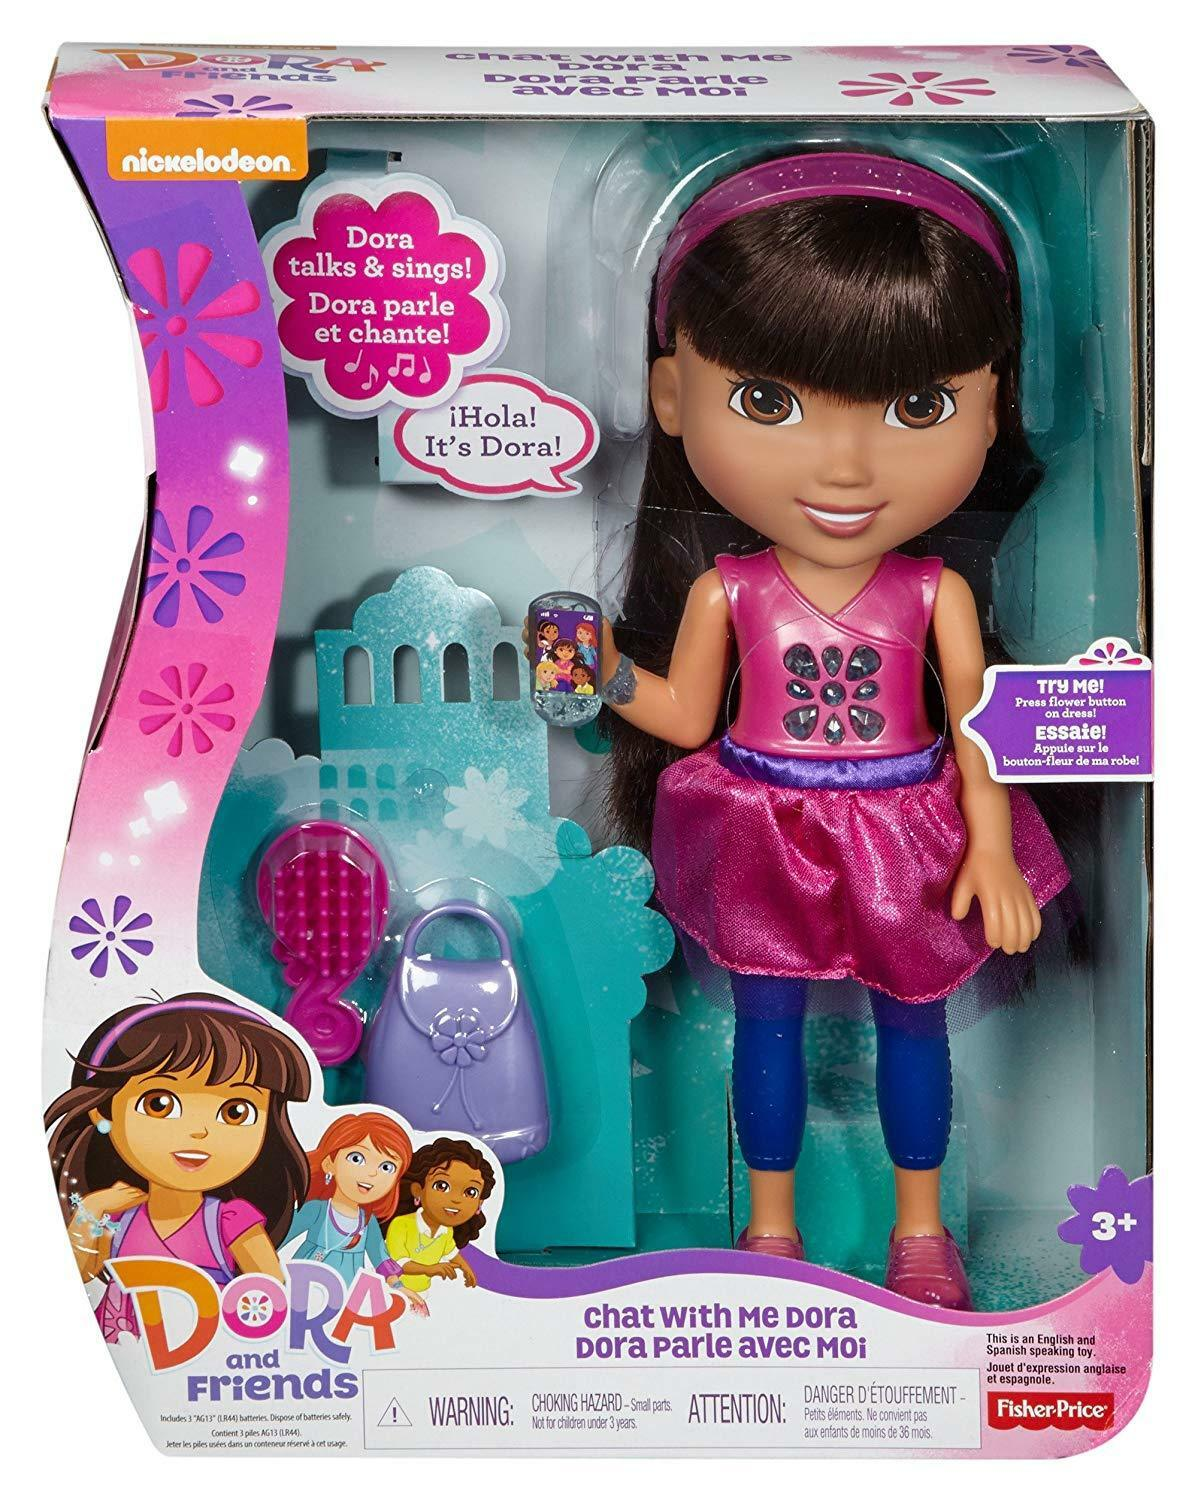 Fisher Price Dora vänner Chat With Me Doll Ages 3e New leksak spela flickor Gift Fun